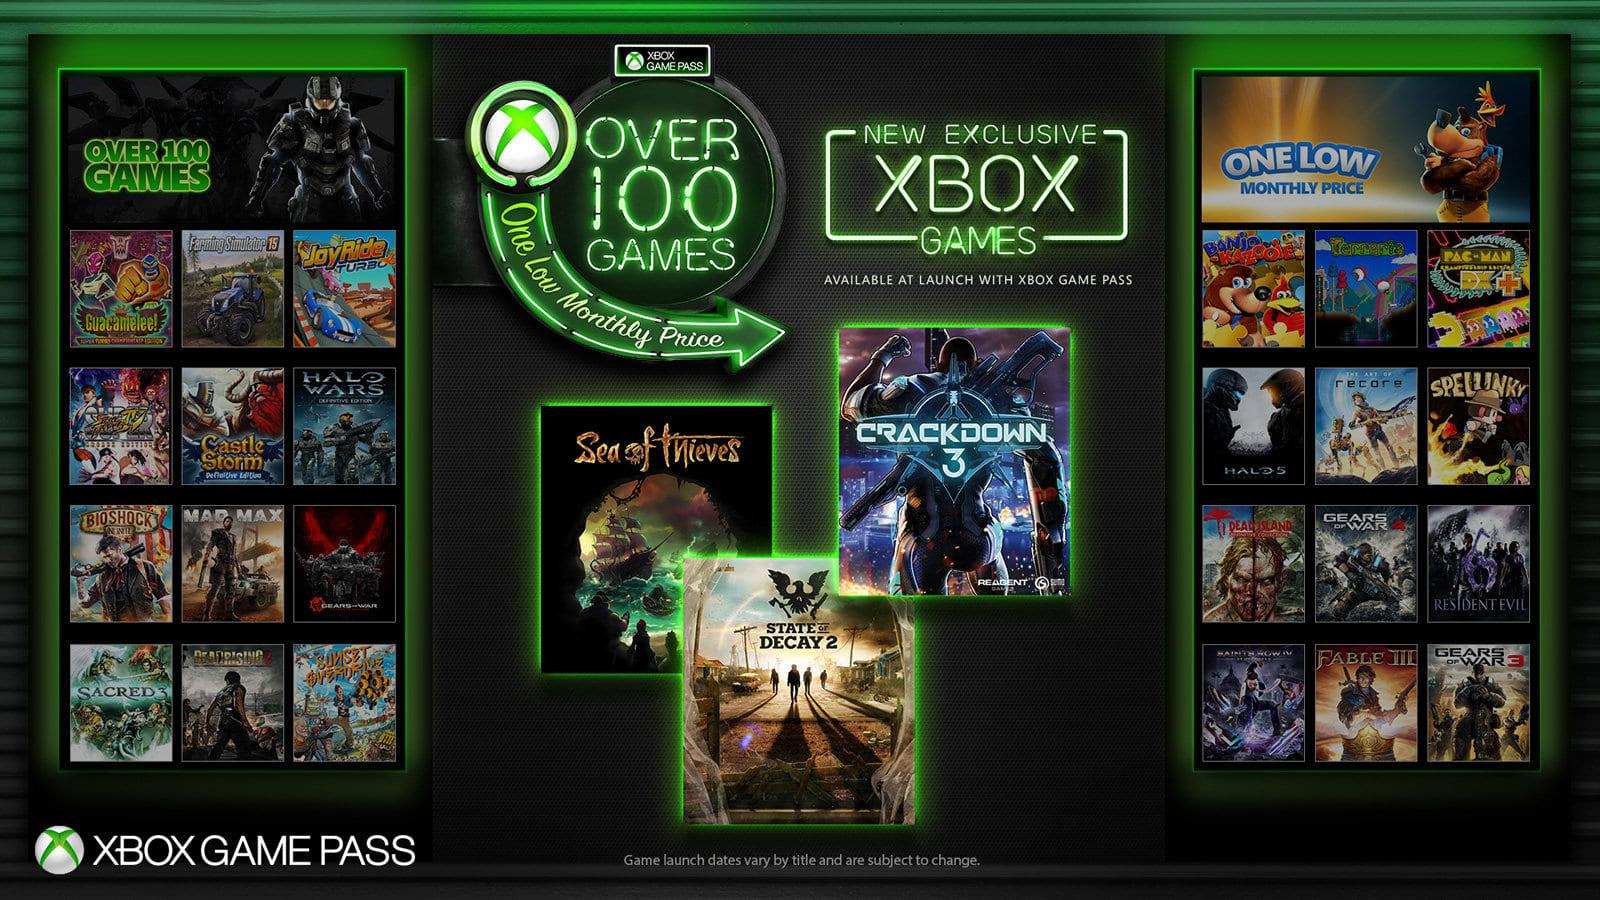 Xbox Game Pass Ultimate Combines Gold And Games For 15 A Month Engadget